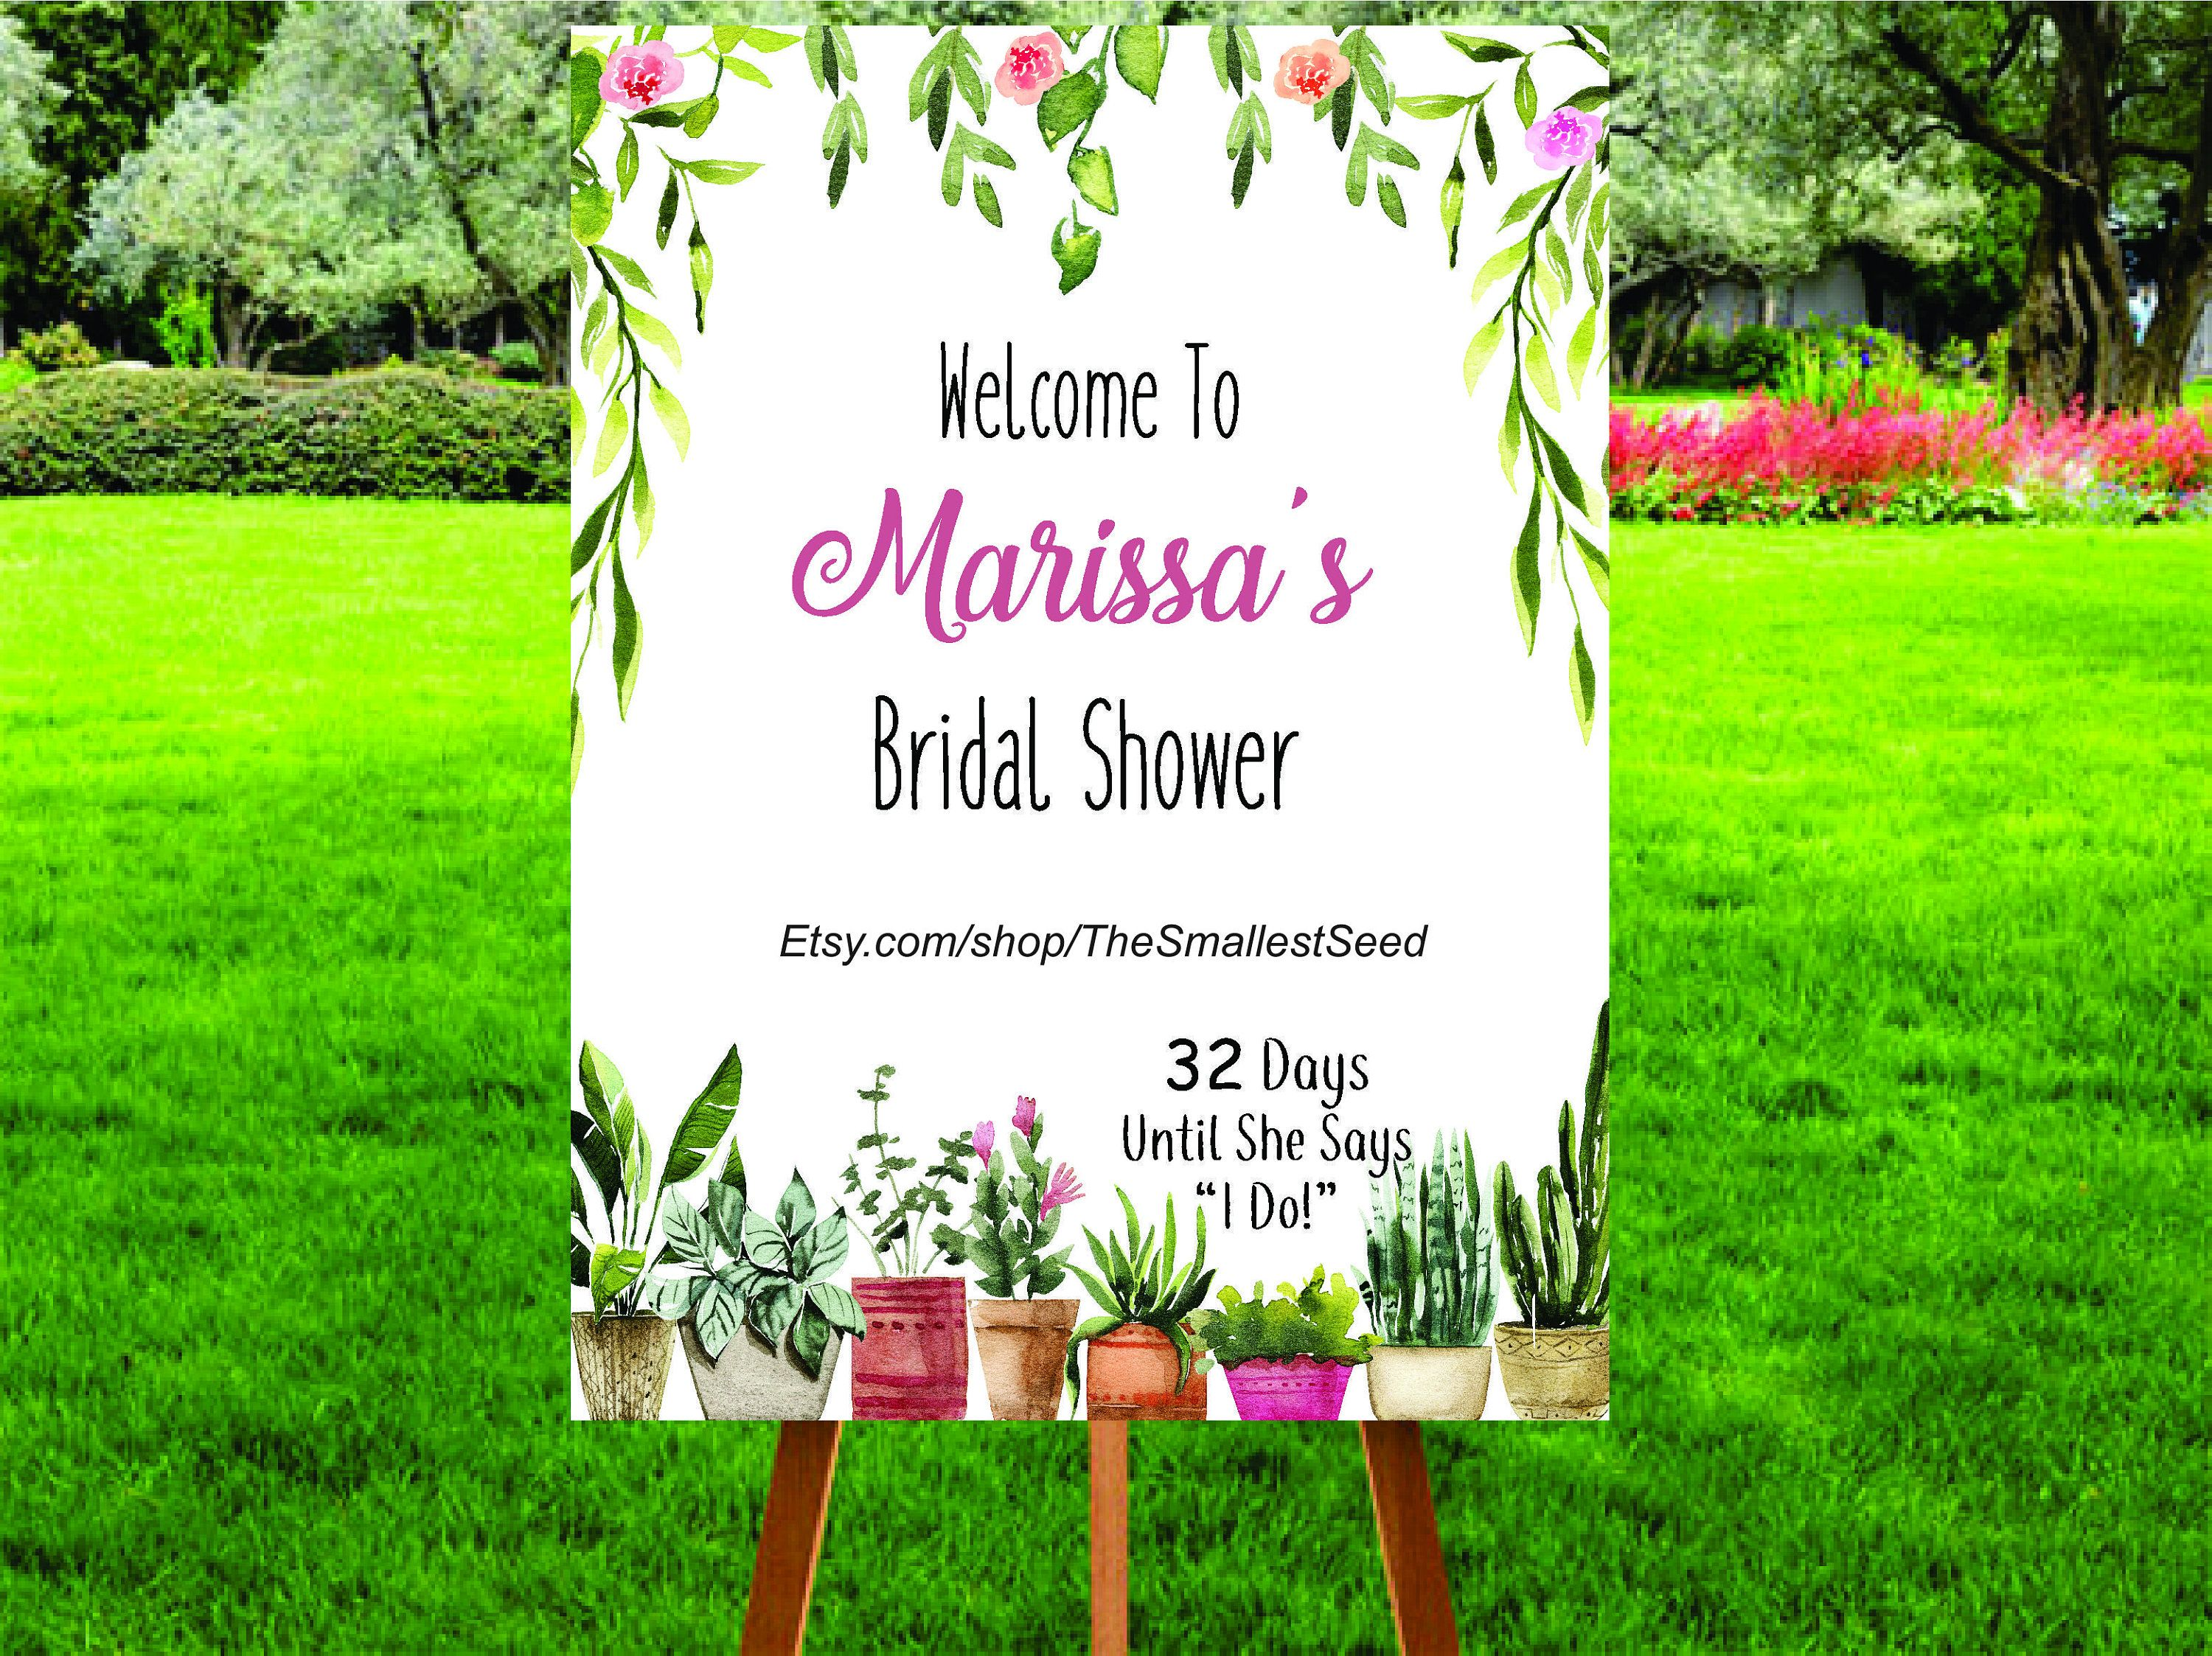 Bridal Shower Printable Welcome Sign Countdown To Wedding Sign Garden Party Potted Plants Bridal Shower Wedding Signs Bridal